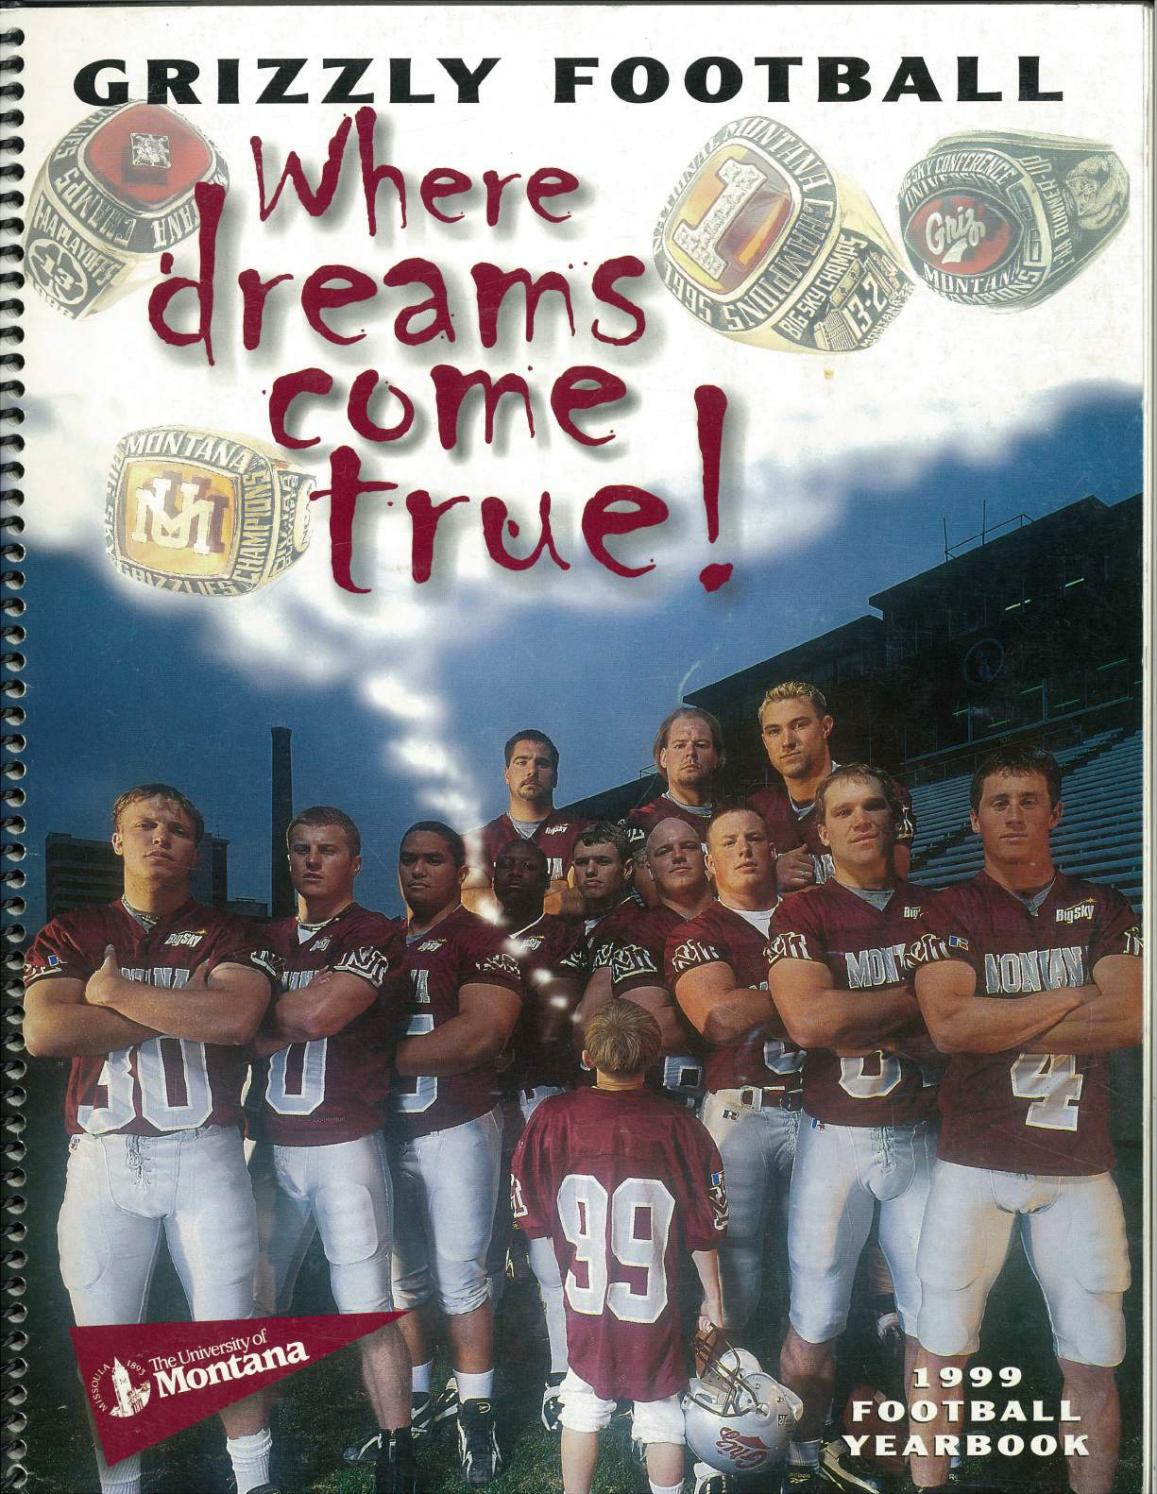 1999 Football Media Guide By University Of Montana Athletics